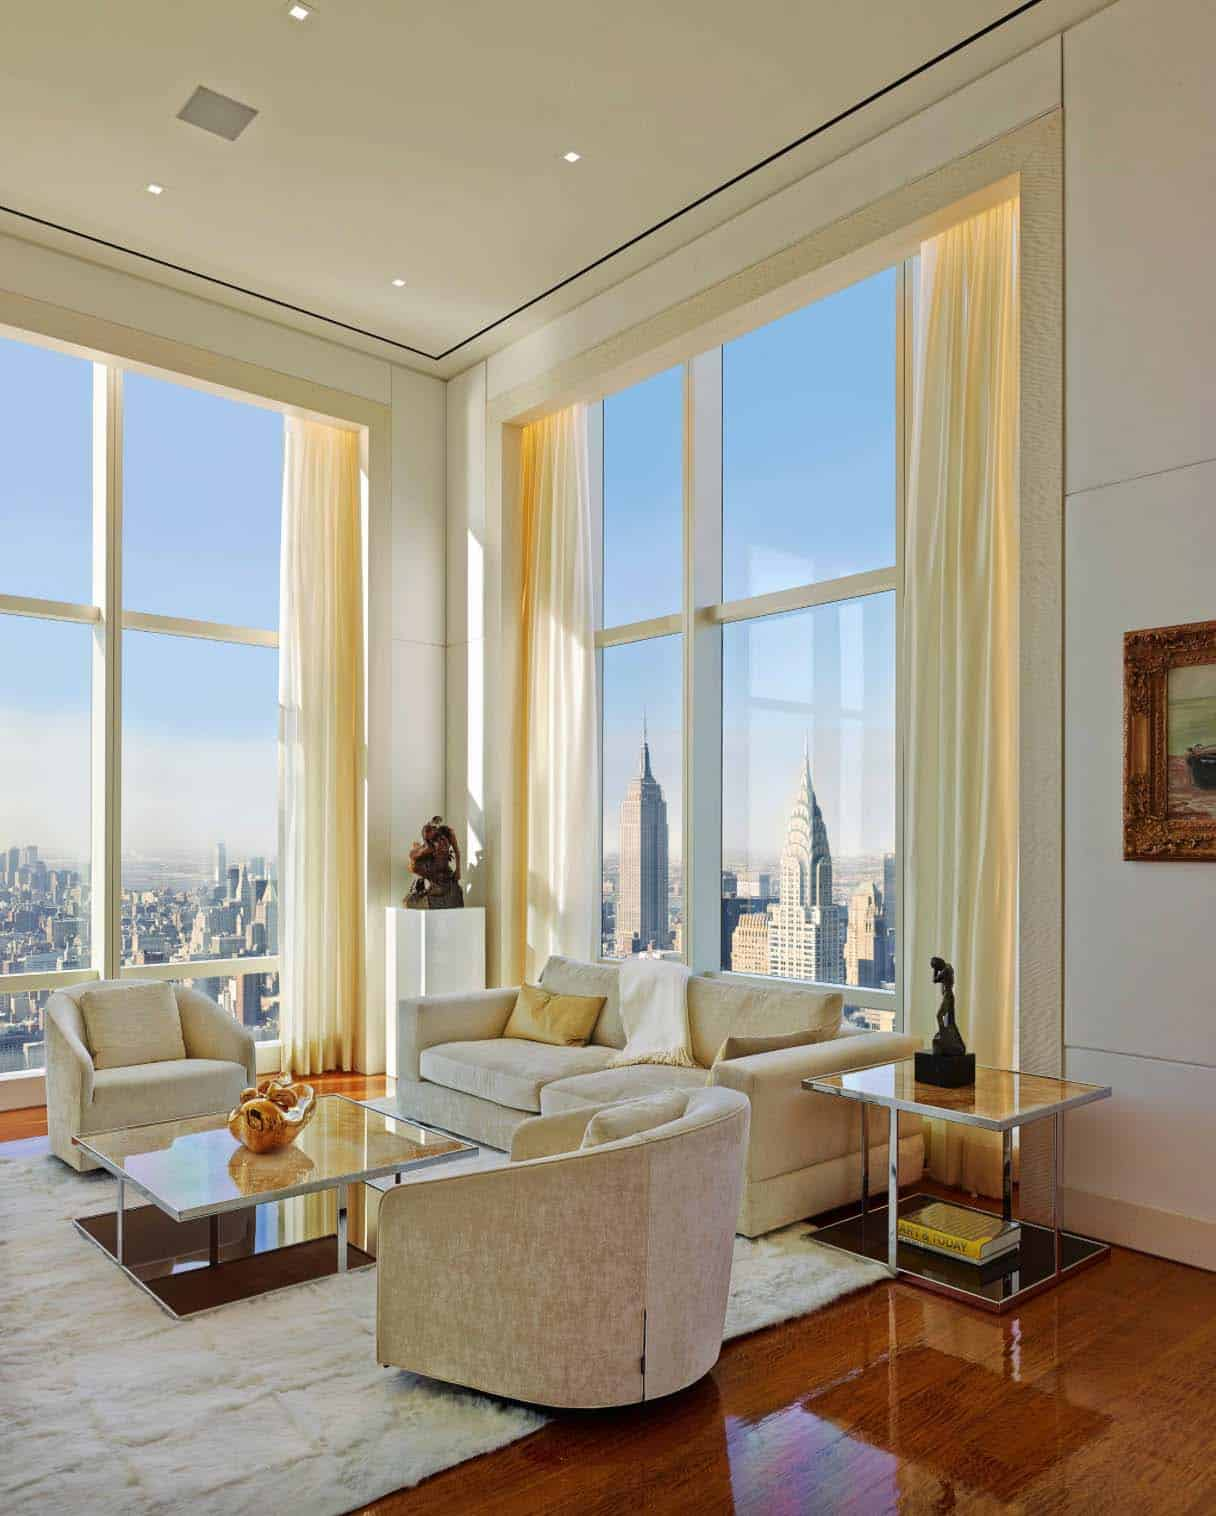 New York Apartments Inside: Step Inside This Jaw-dropping New York City Penthouse